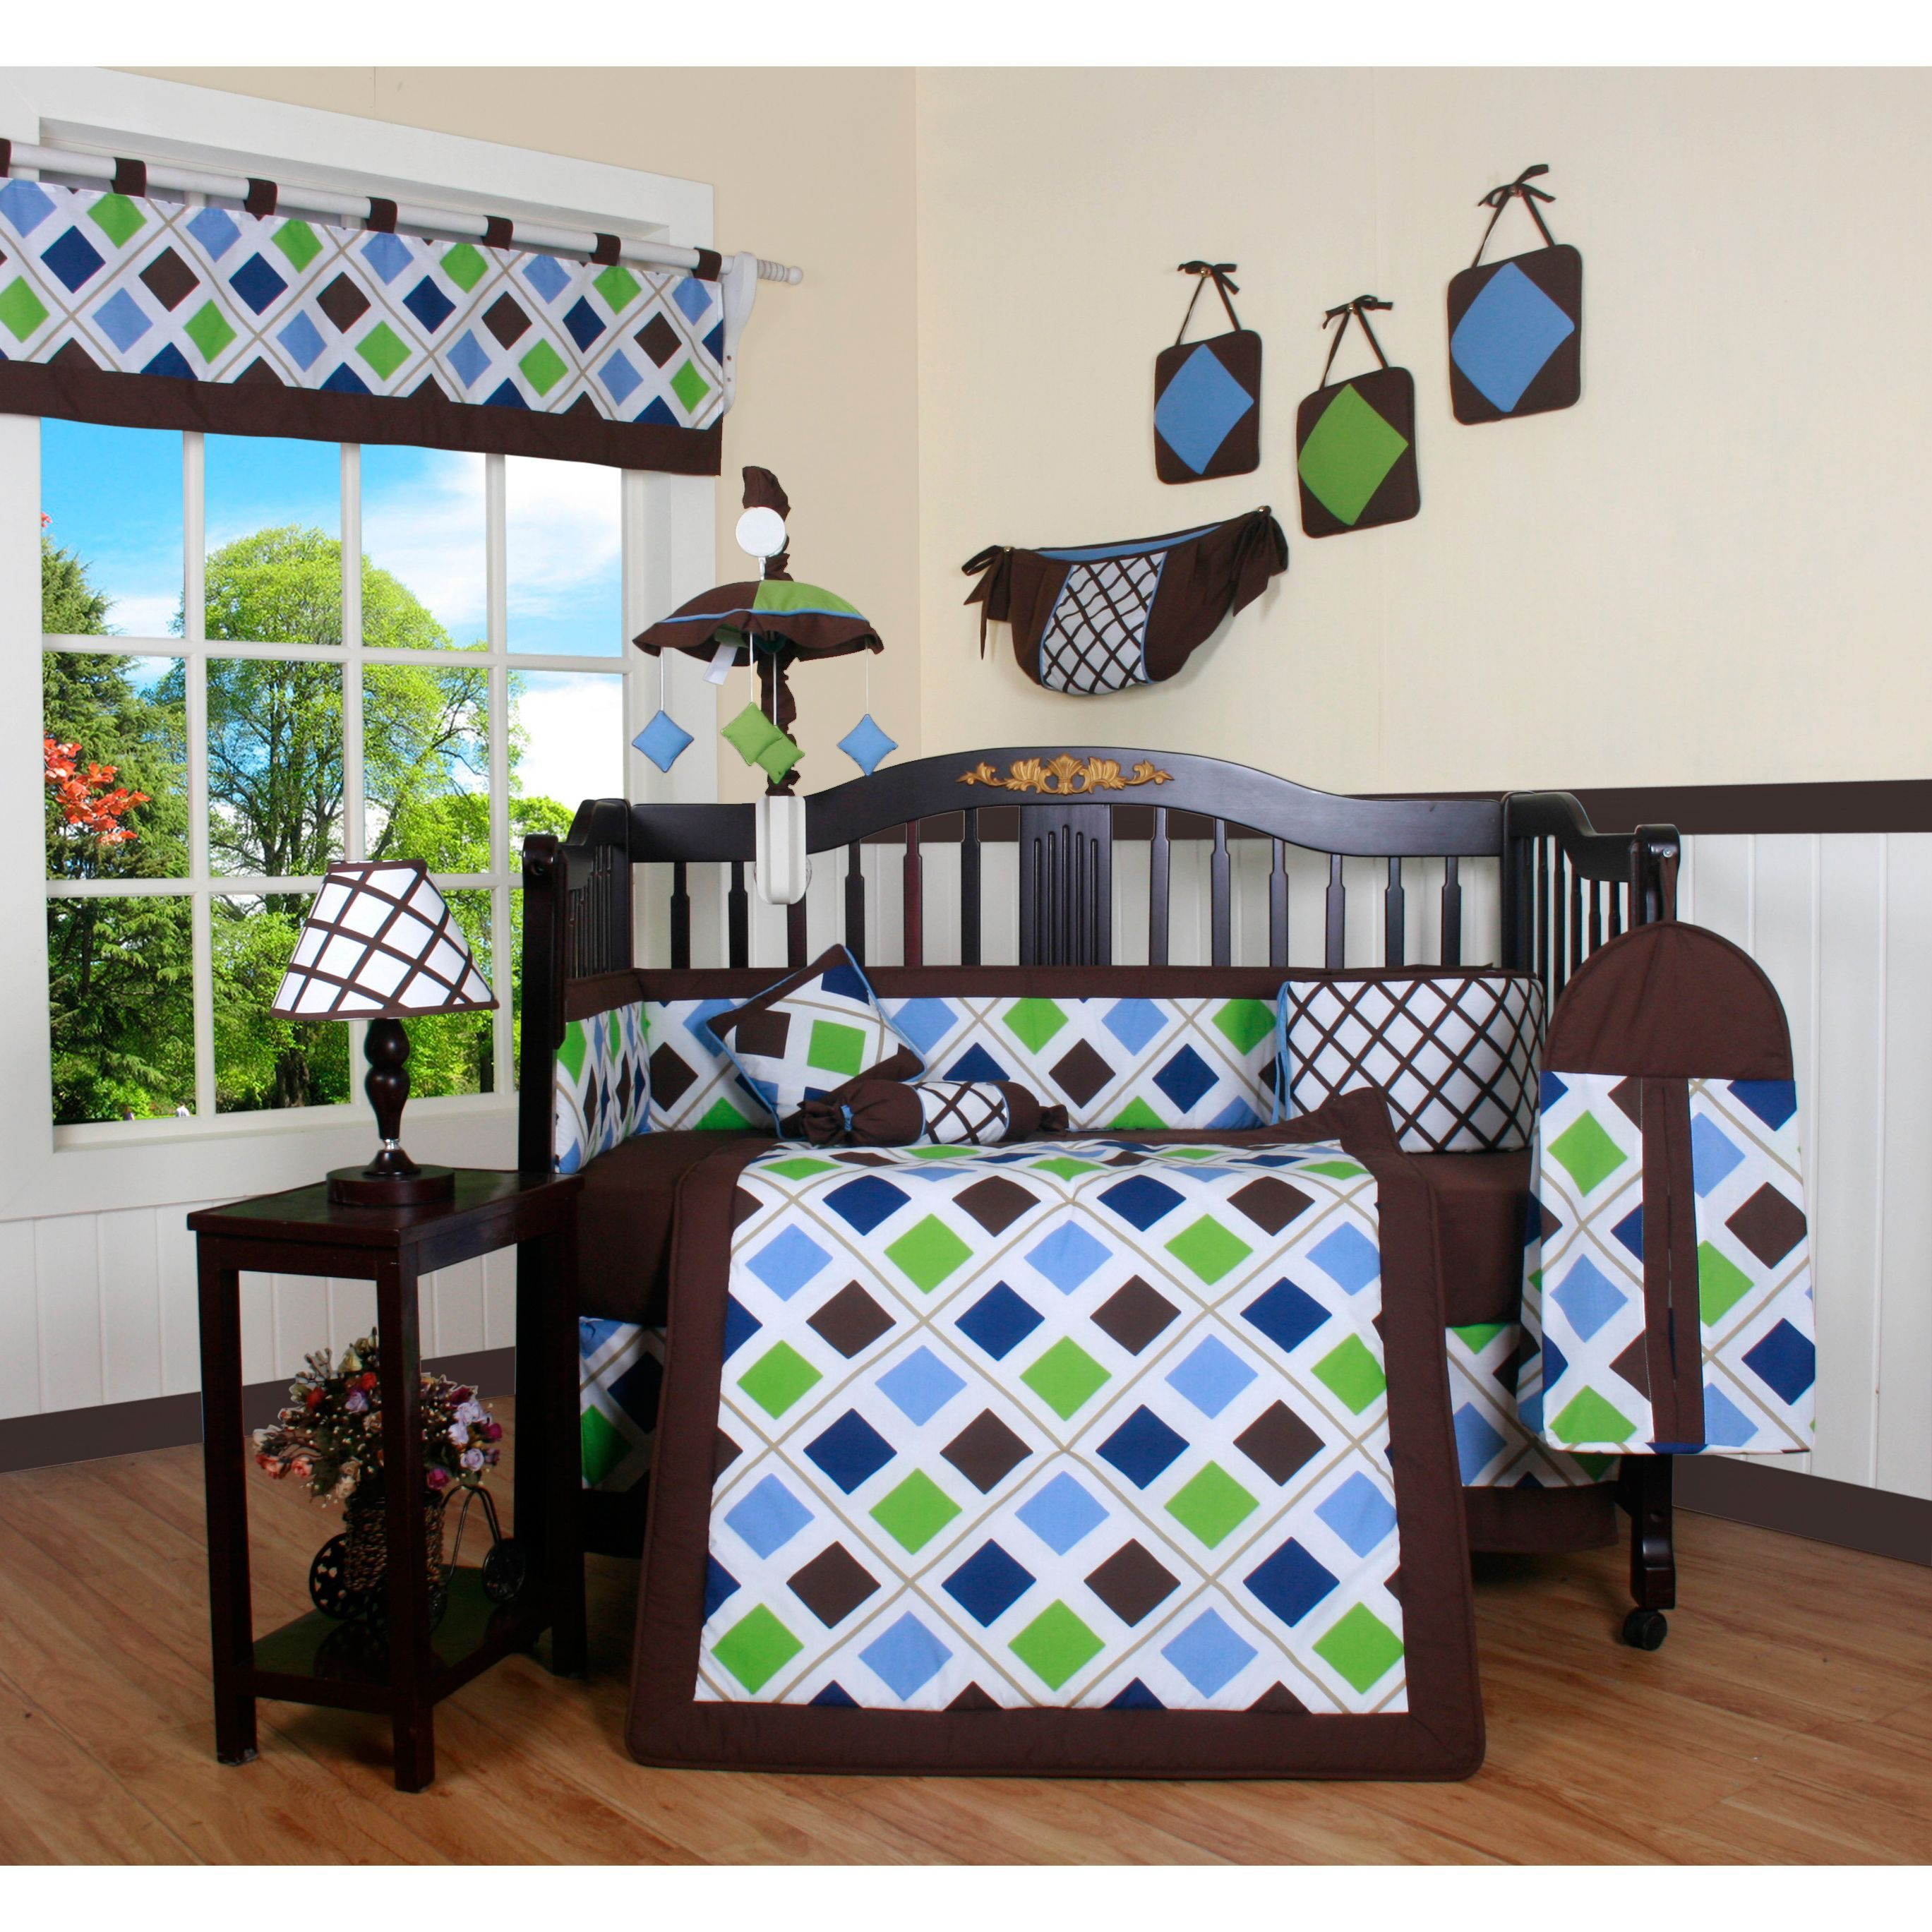 Online Shopping Bedding Furniture Electronics Jewelry Clothing More Crib Bedding Sets Baby Crib Bedding Sets Crib Bedding